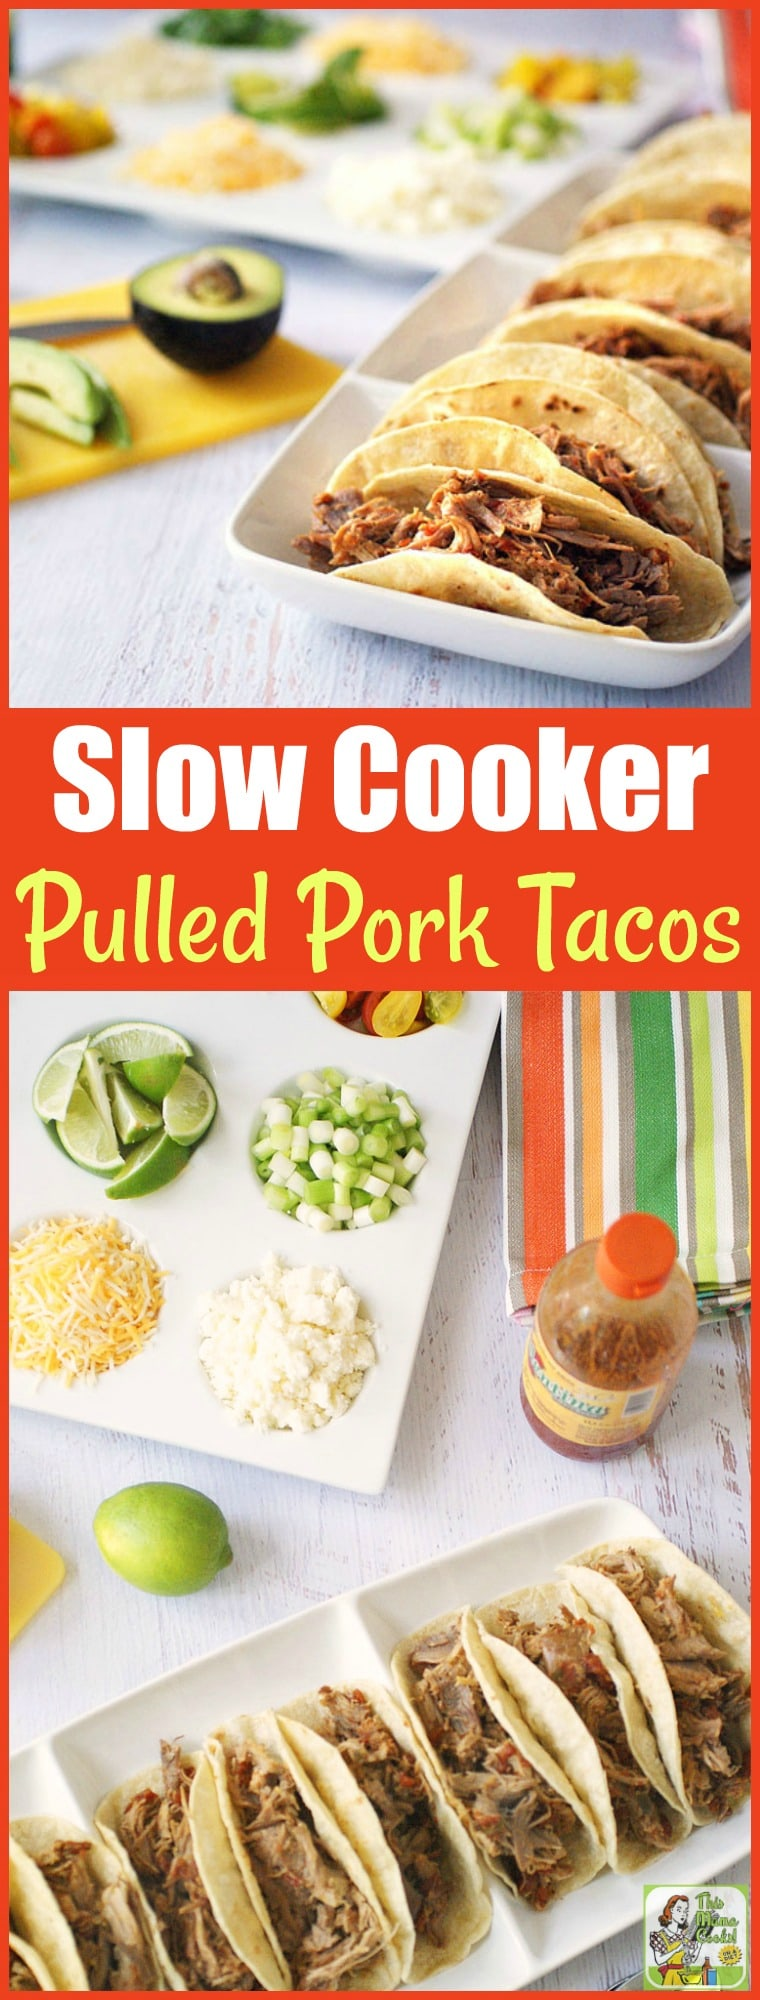 Pulled pork tacos are a go-to meal at my home. That's because Slow Cooker Pulled Pork Tacos are so quick and easy to make! They\'re perfect for Taco Tuesday, Family Taco Night, parties and potlucks. The whole family will love this crock-pot shredded pork recipe. #SlowCooker #CrockPot #ShreddedPork #PulledPork #MexicanFood #TacoTuesday #FamilyTacoNight #PartyFood #PotluckRecipes #SlowCookerRecipes